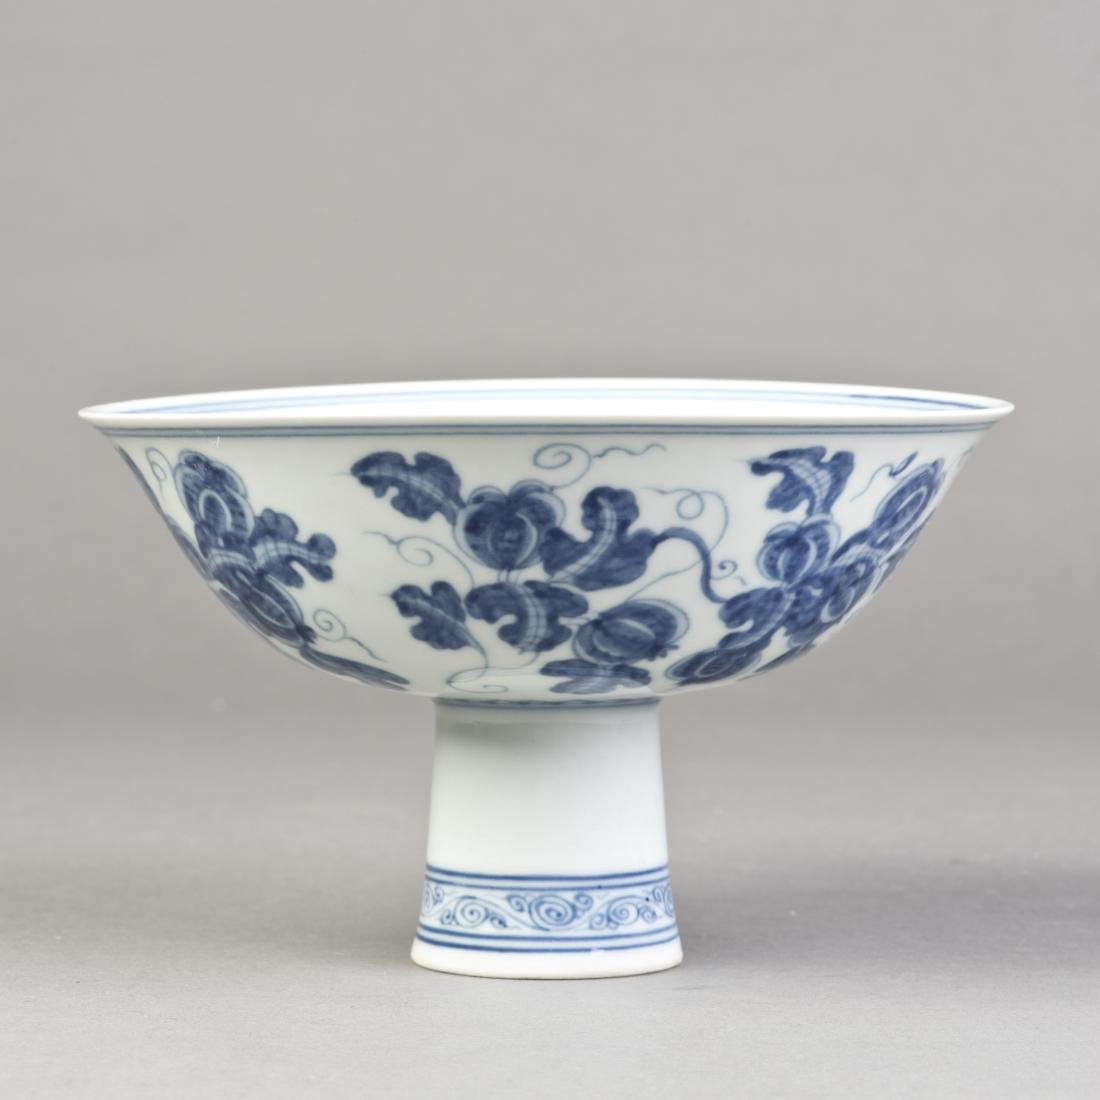 A BLUE AND WHITE GOBLET BOWL